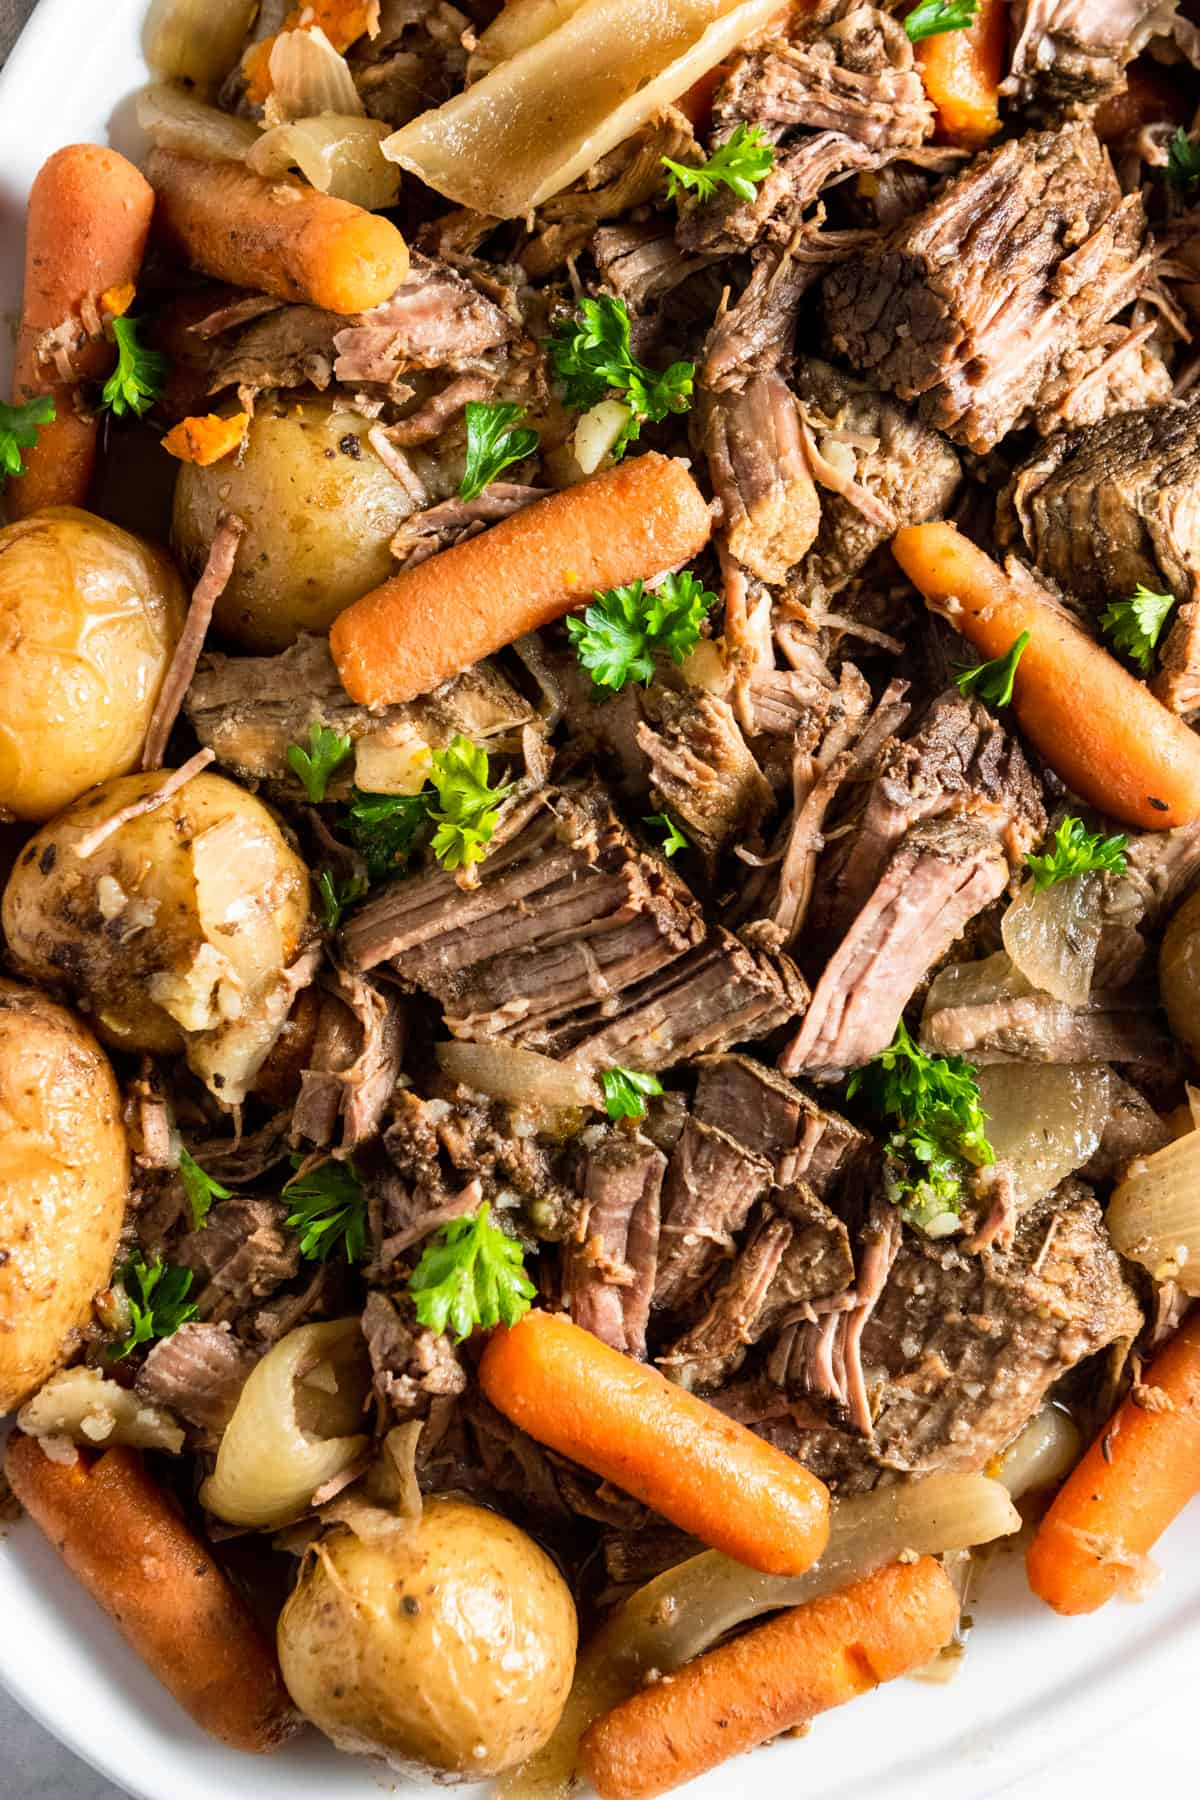 Overhead shot of cooked slow cooker pot roast on white plate.